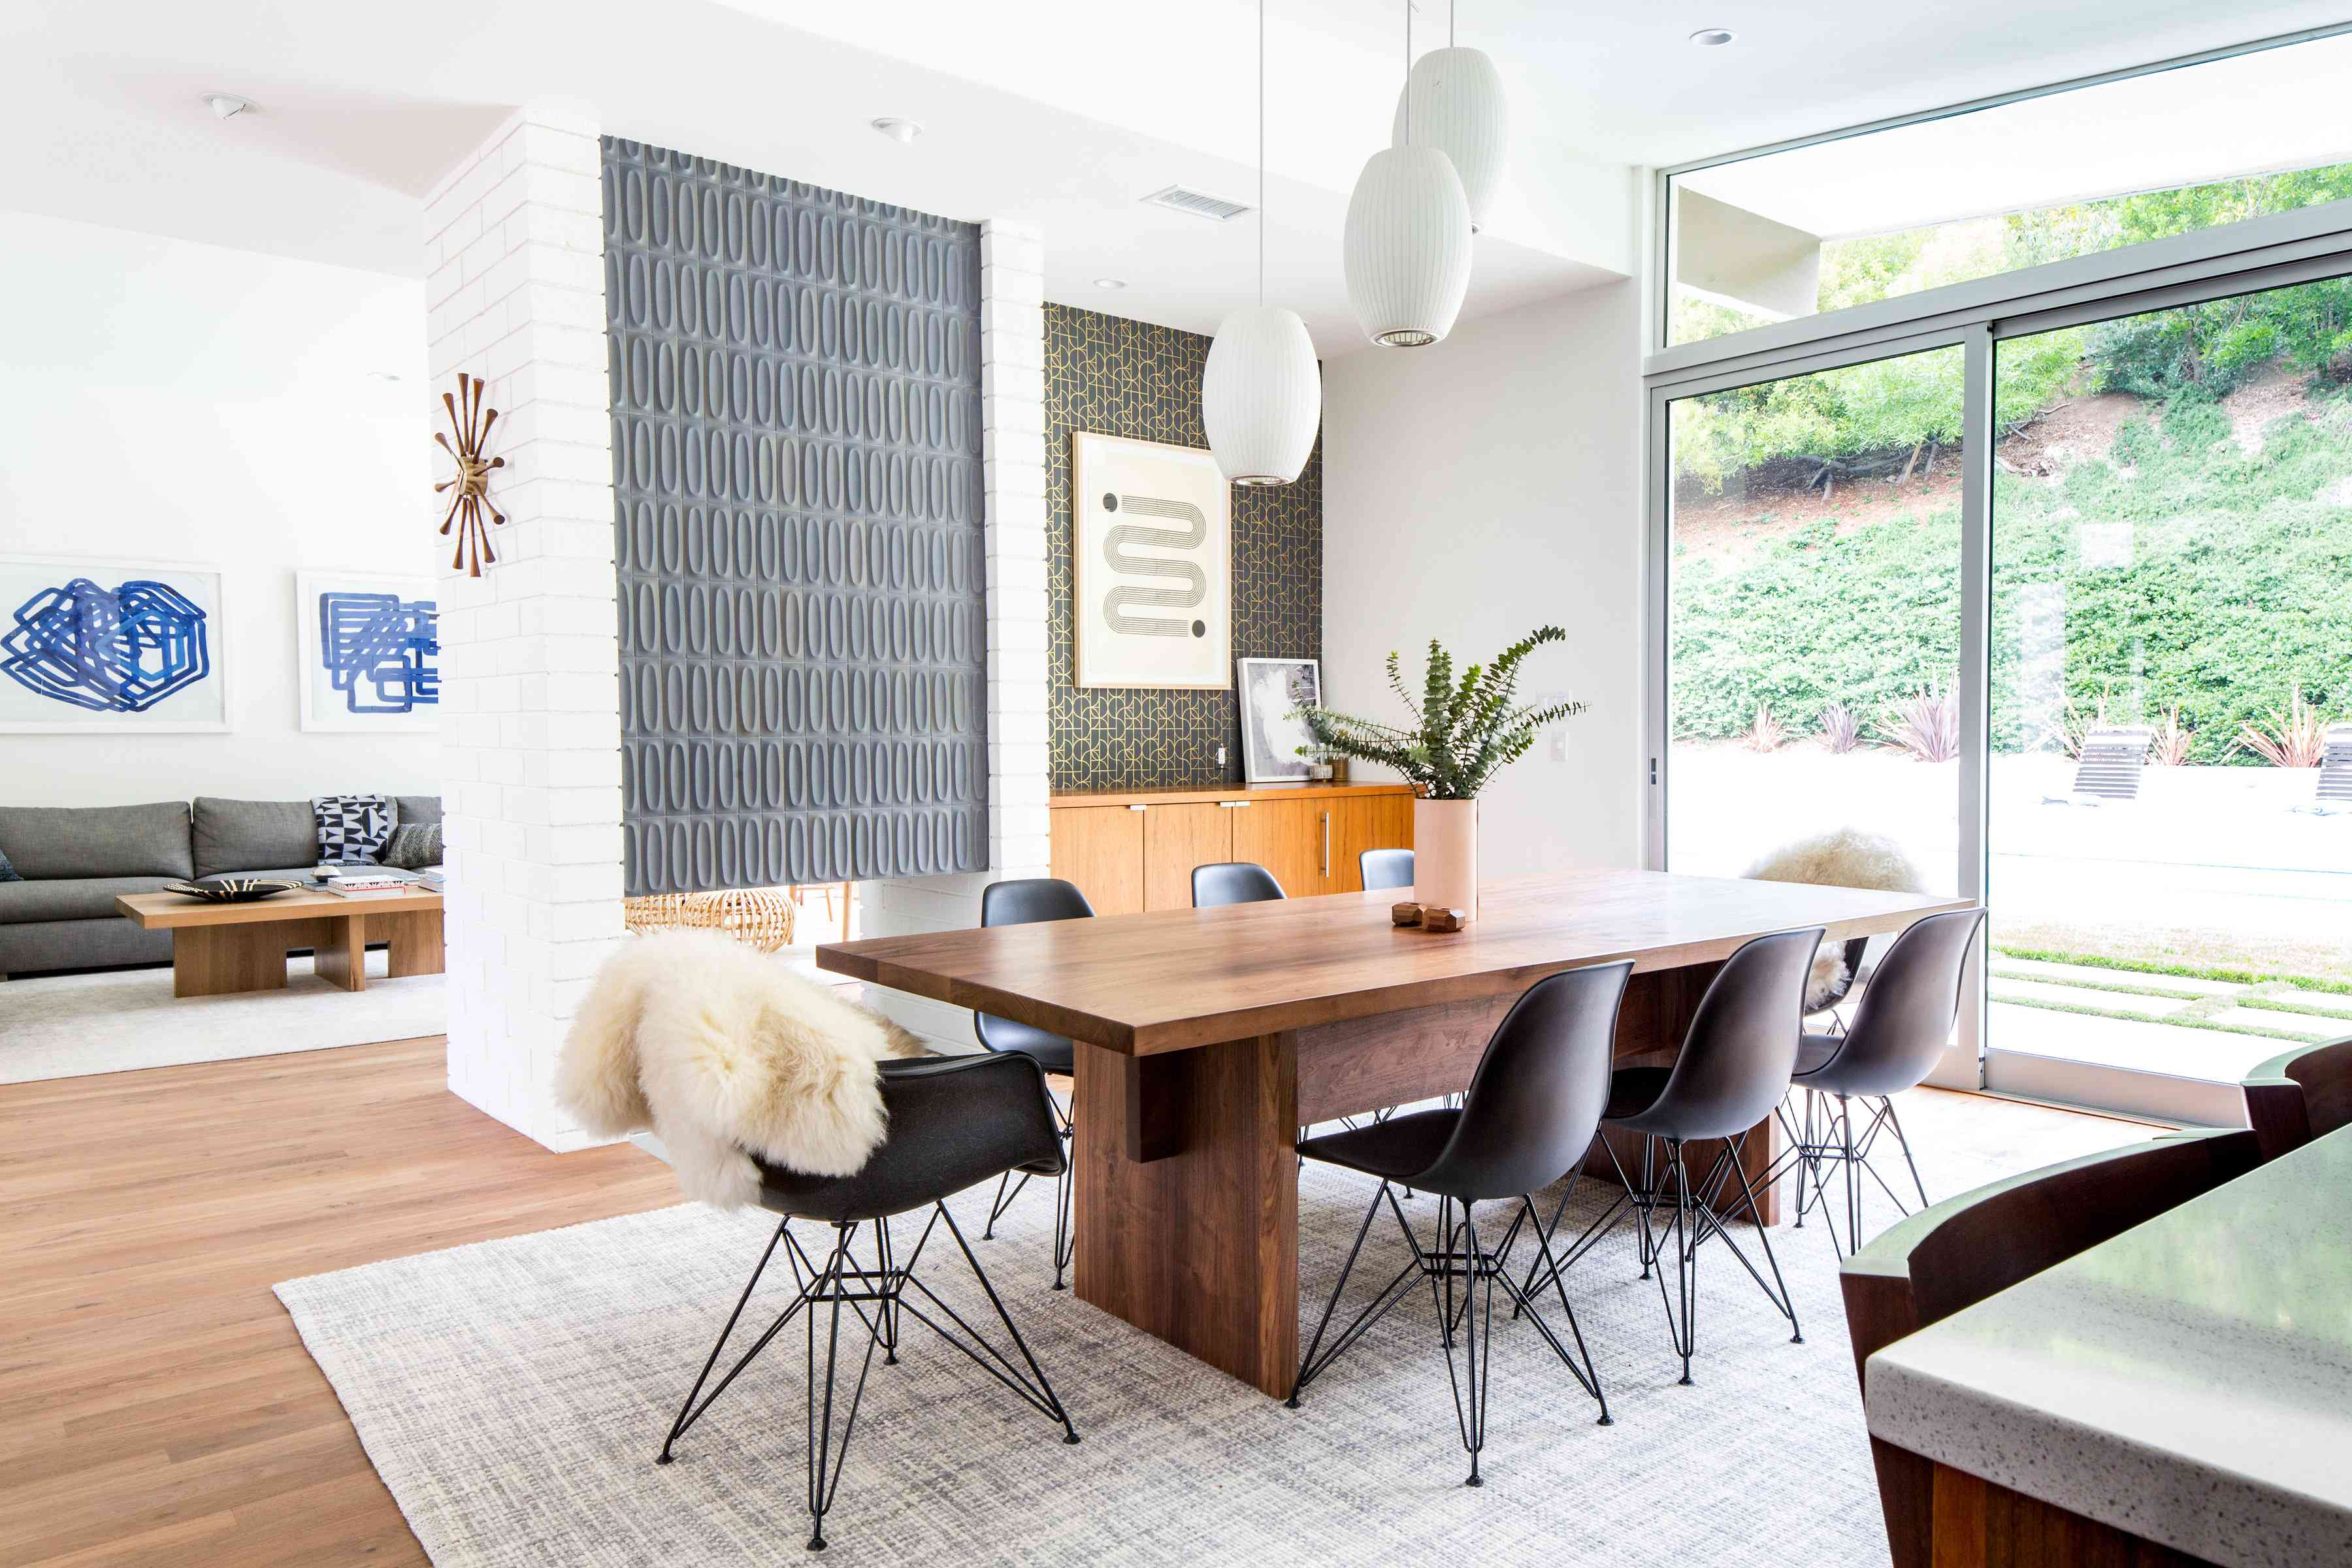 A midcentury modern dining area with quality, solid furniture.